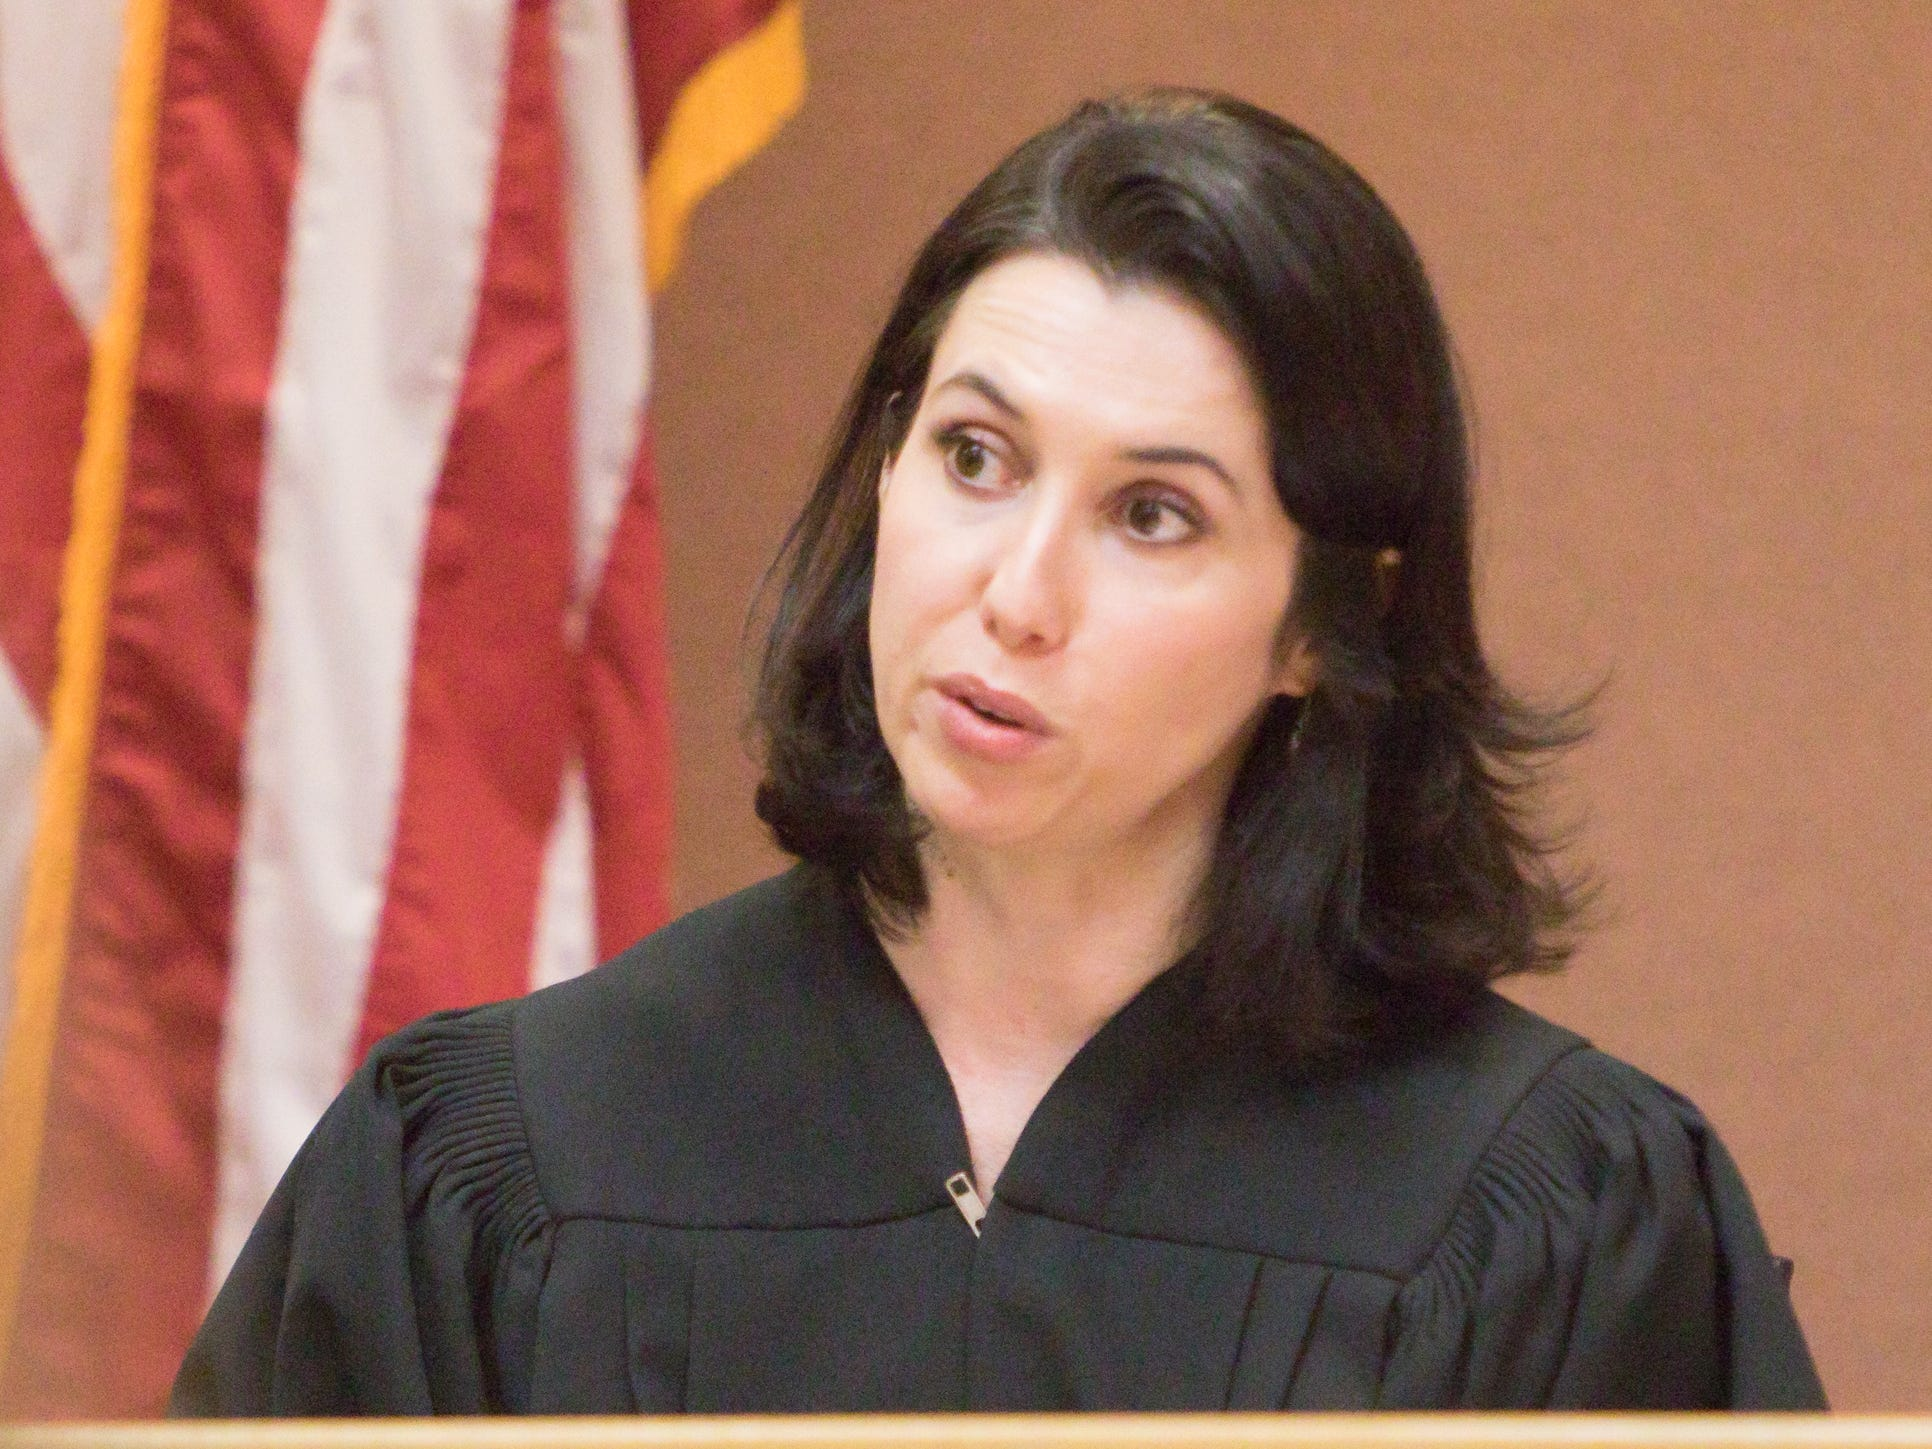 District Court Judge Shauna Murphy, shown Tuesday, Feb. 26, 2019, presides over the sentencing of Crystan Medina.